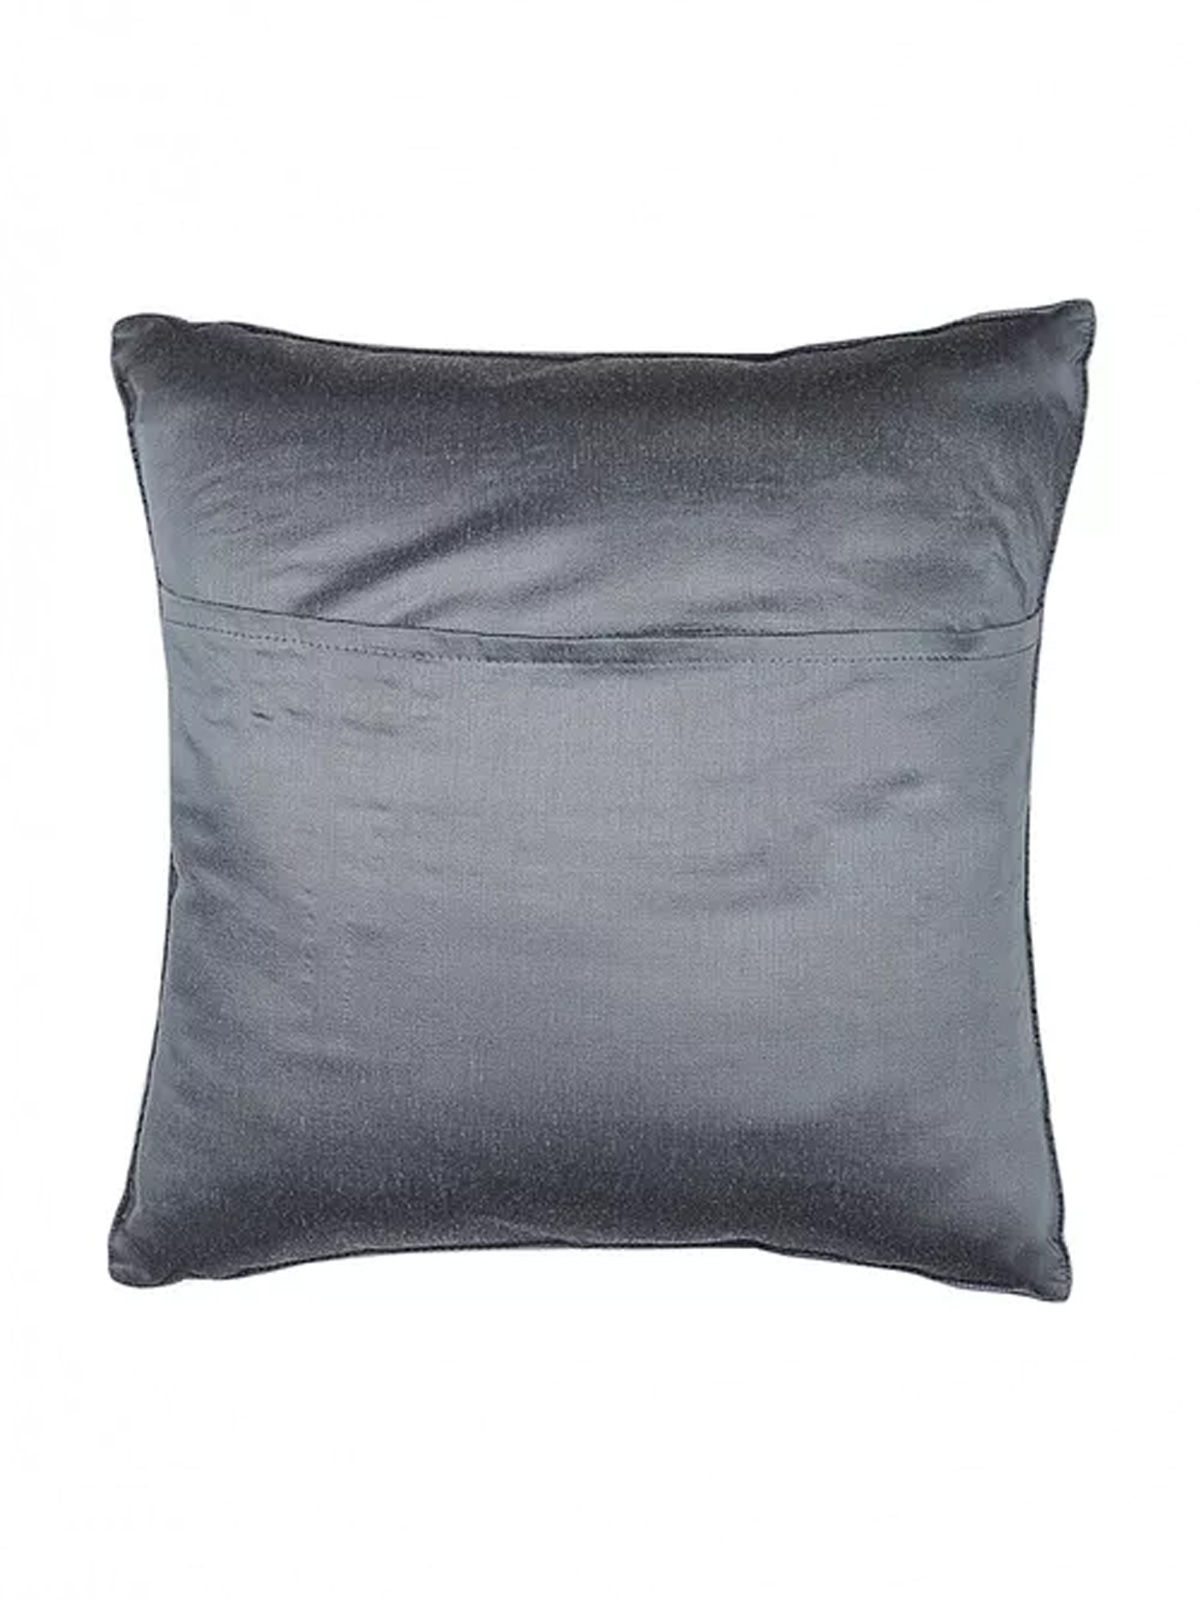 Grey-Blue Embroidered Silk Cushion Cover with Marigold Motif